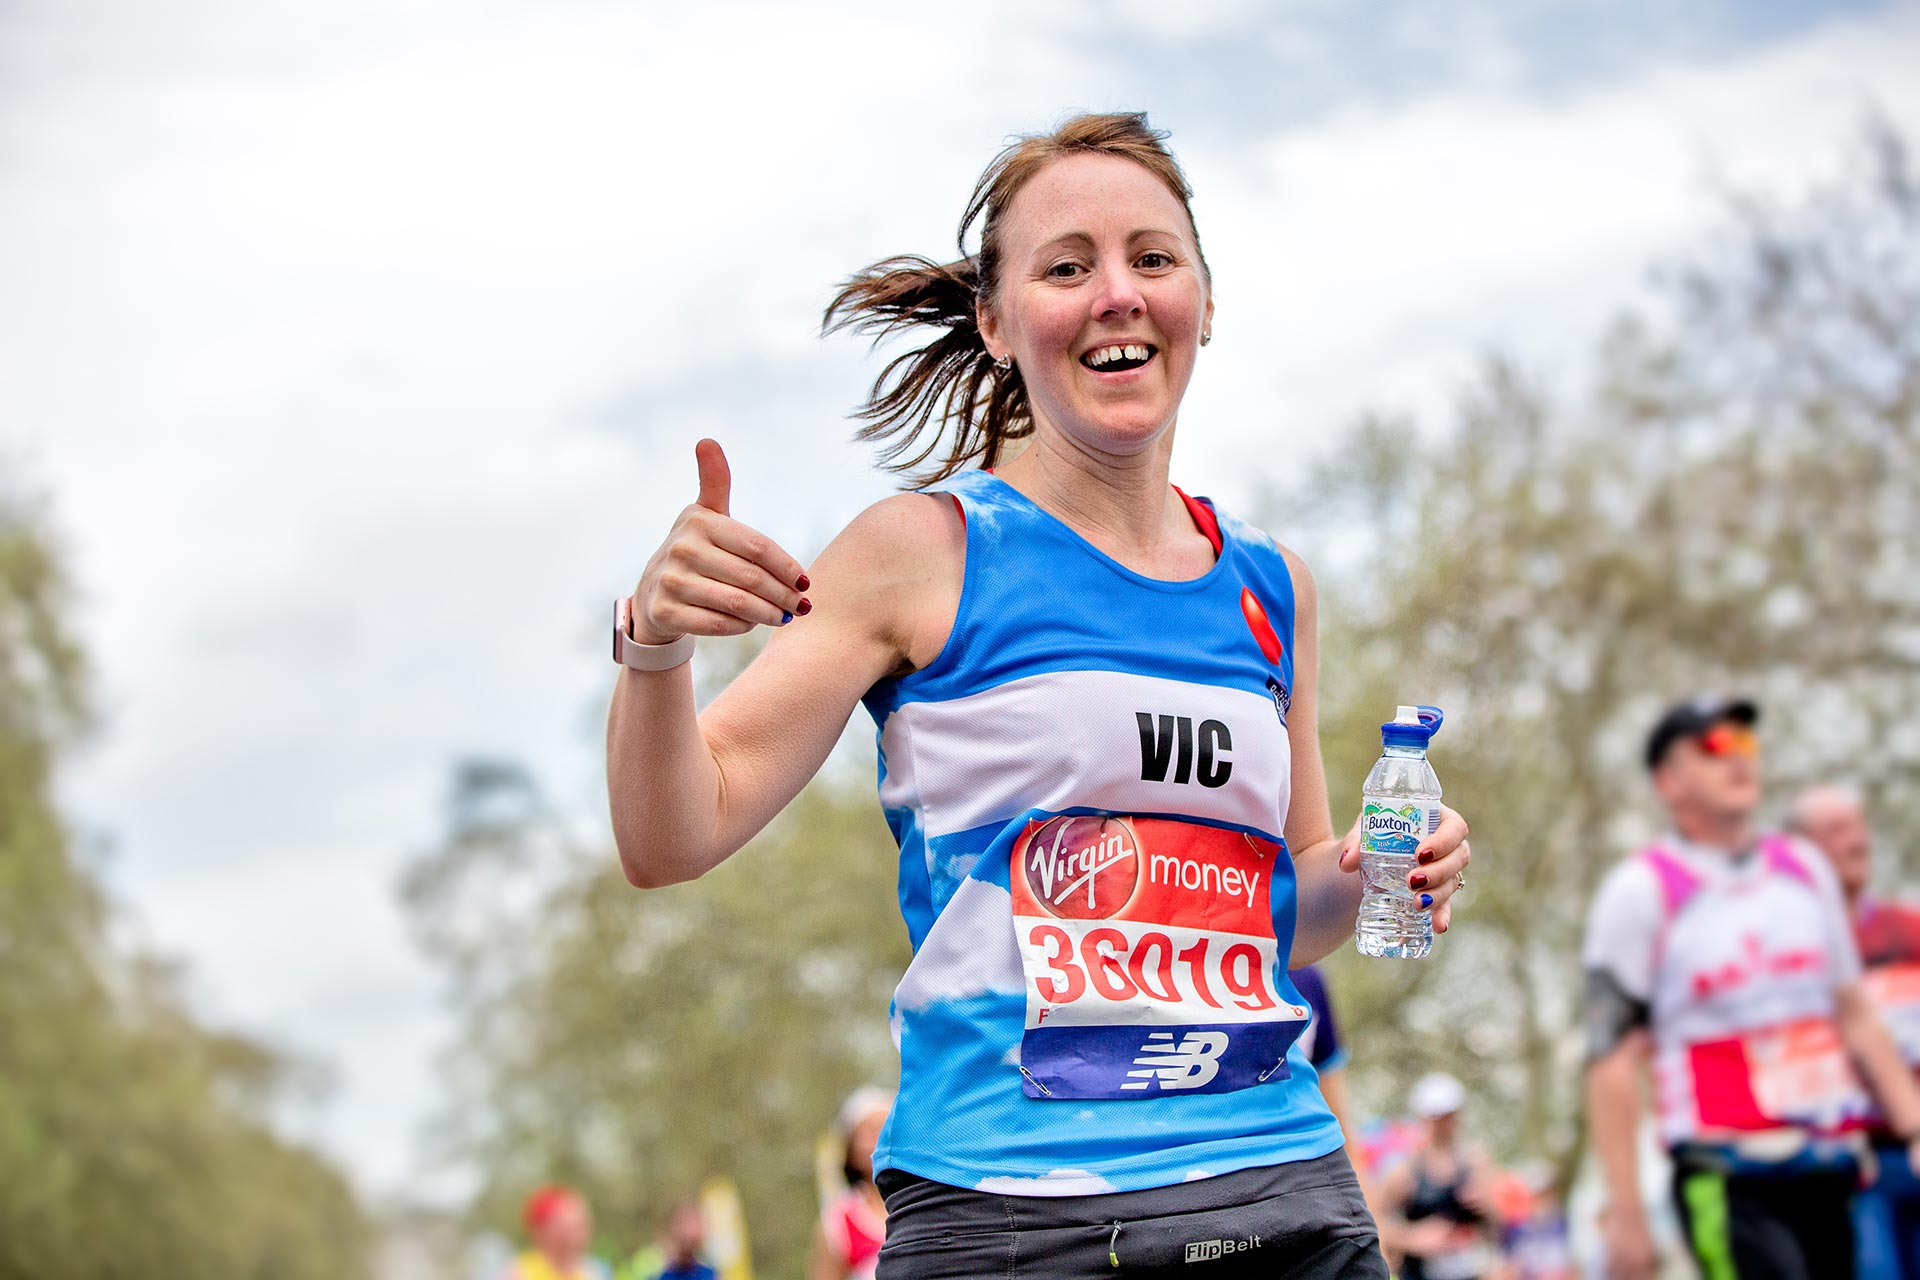 The-Virgin-London-Marathon-2018-with-British-Lung-Foundation-©-Brendan-Foster-Photography-436-Edit-96.jpg